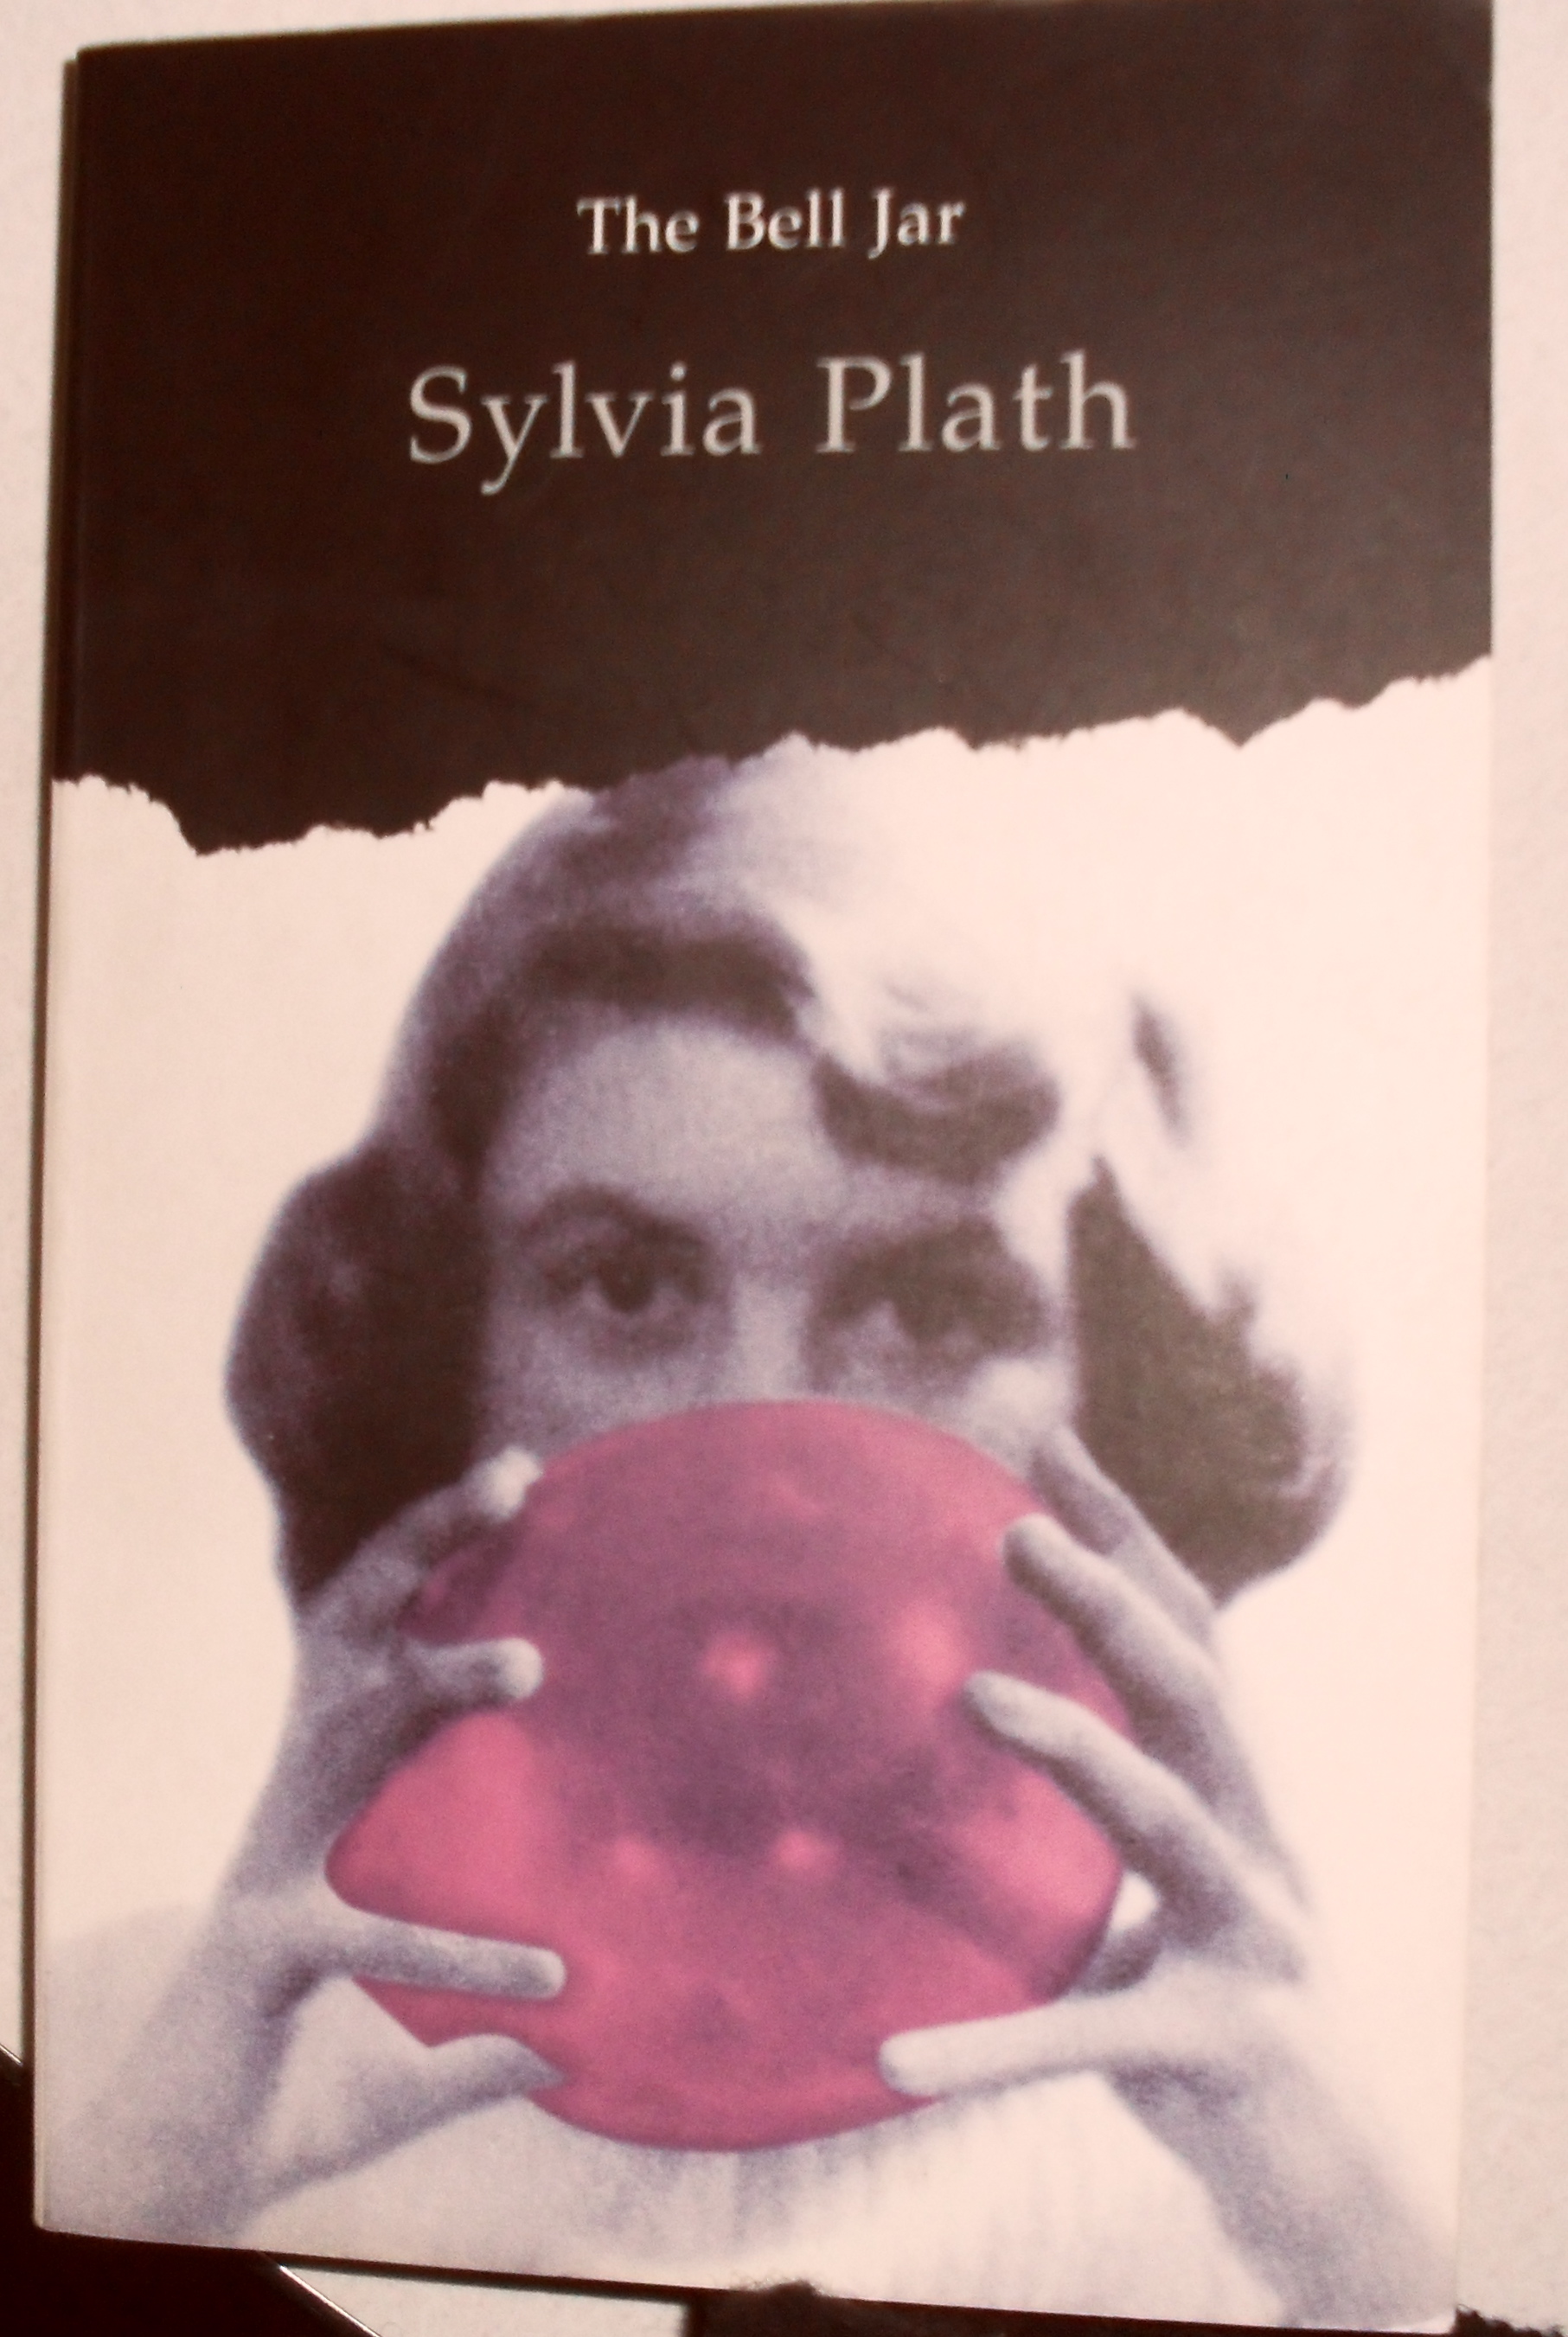 the inner conflict and encounters of esther greenwood in the bell jar a novel by sylvia plath